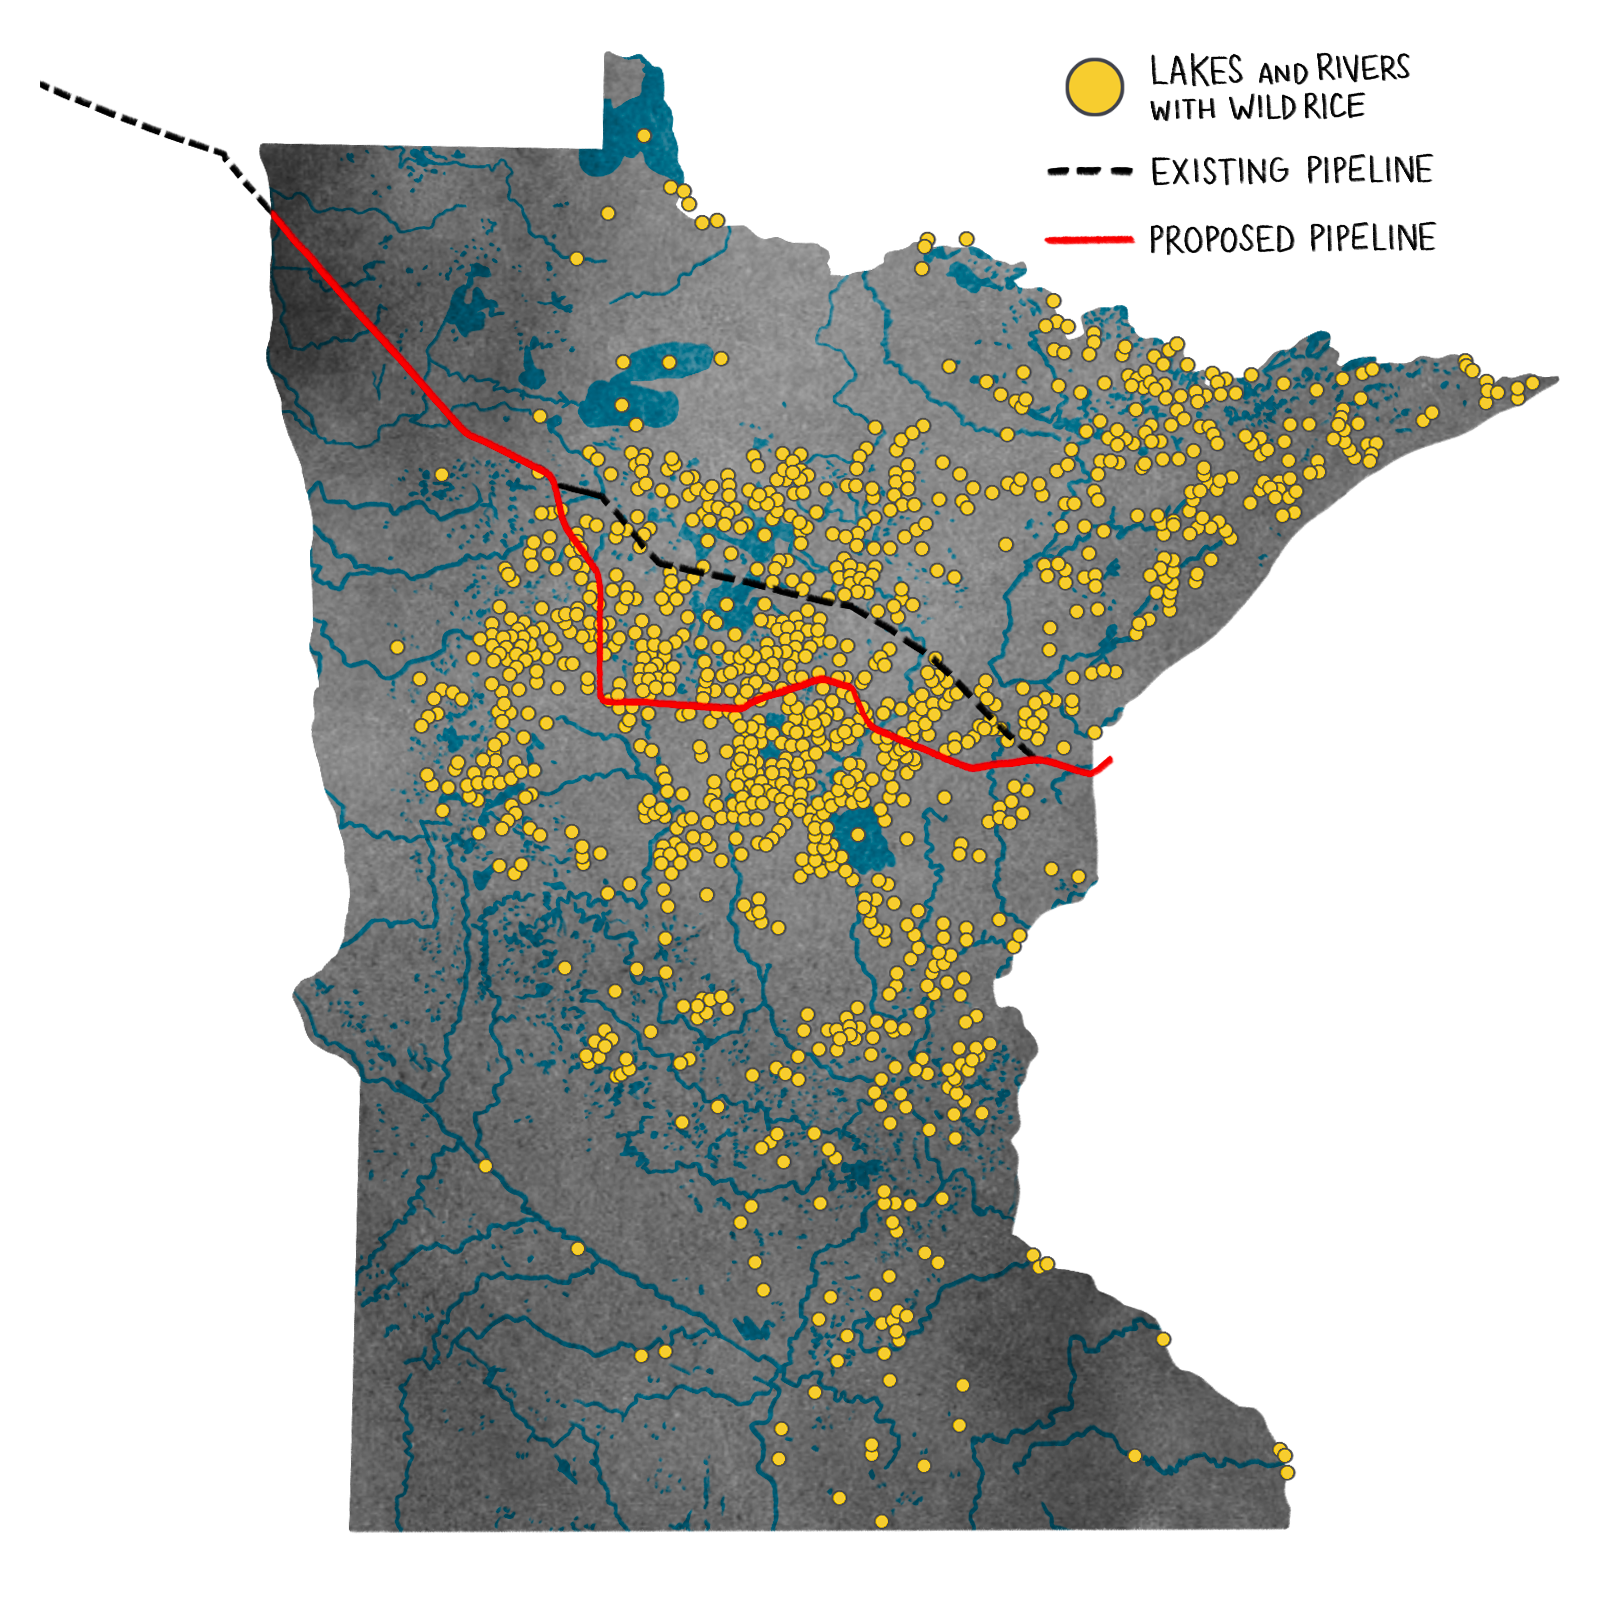 a map of Minnesota showing how the Line 3 pipeline would cut through wild rice grow areas, marked in yellow dots